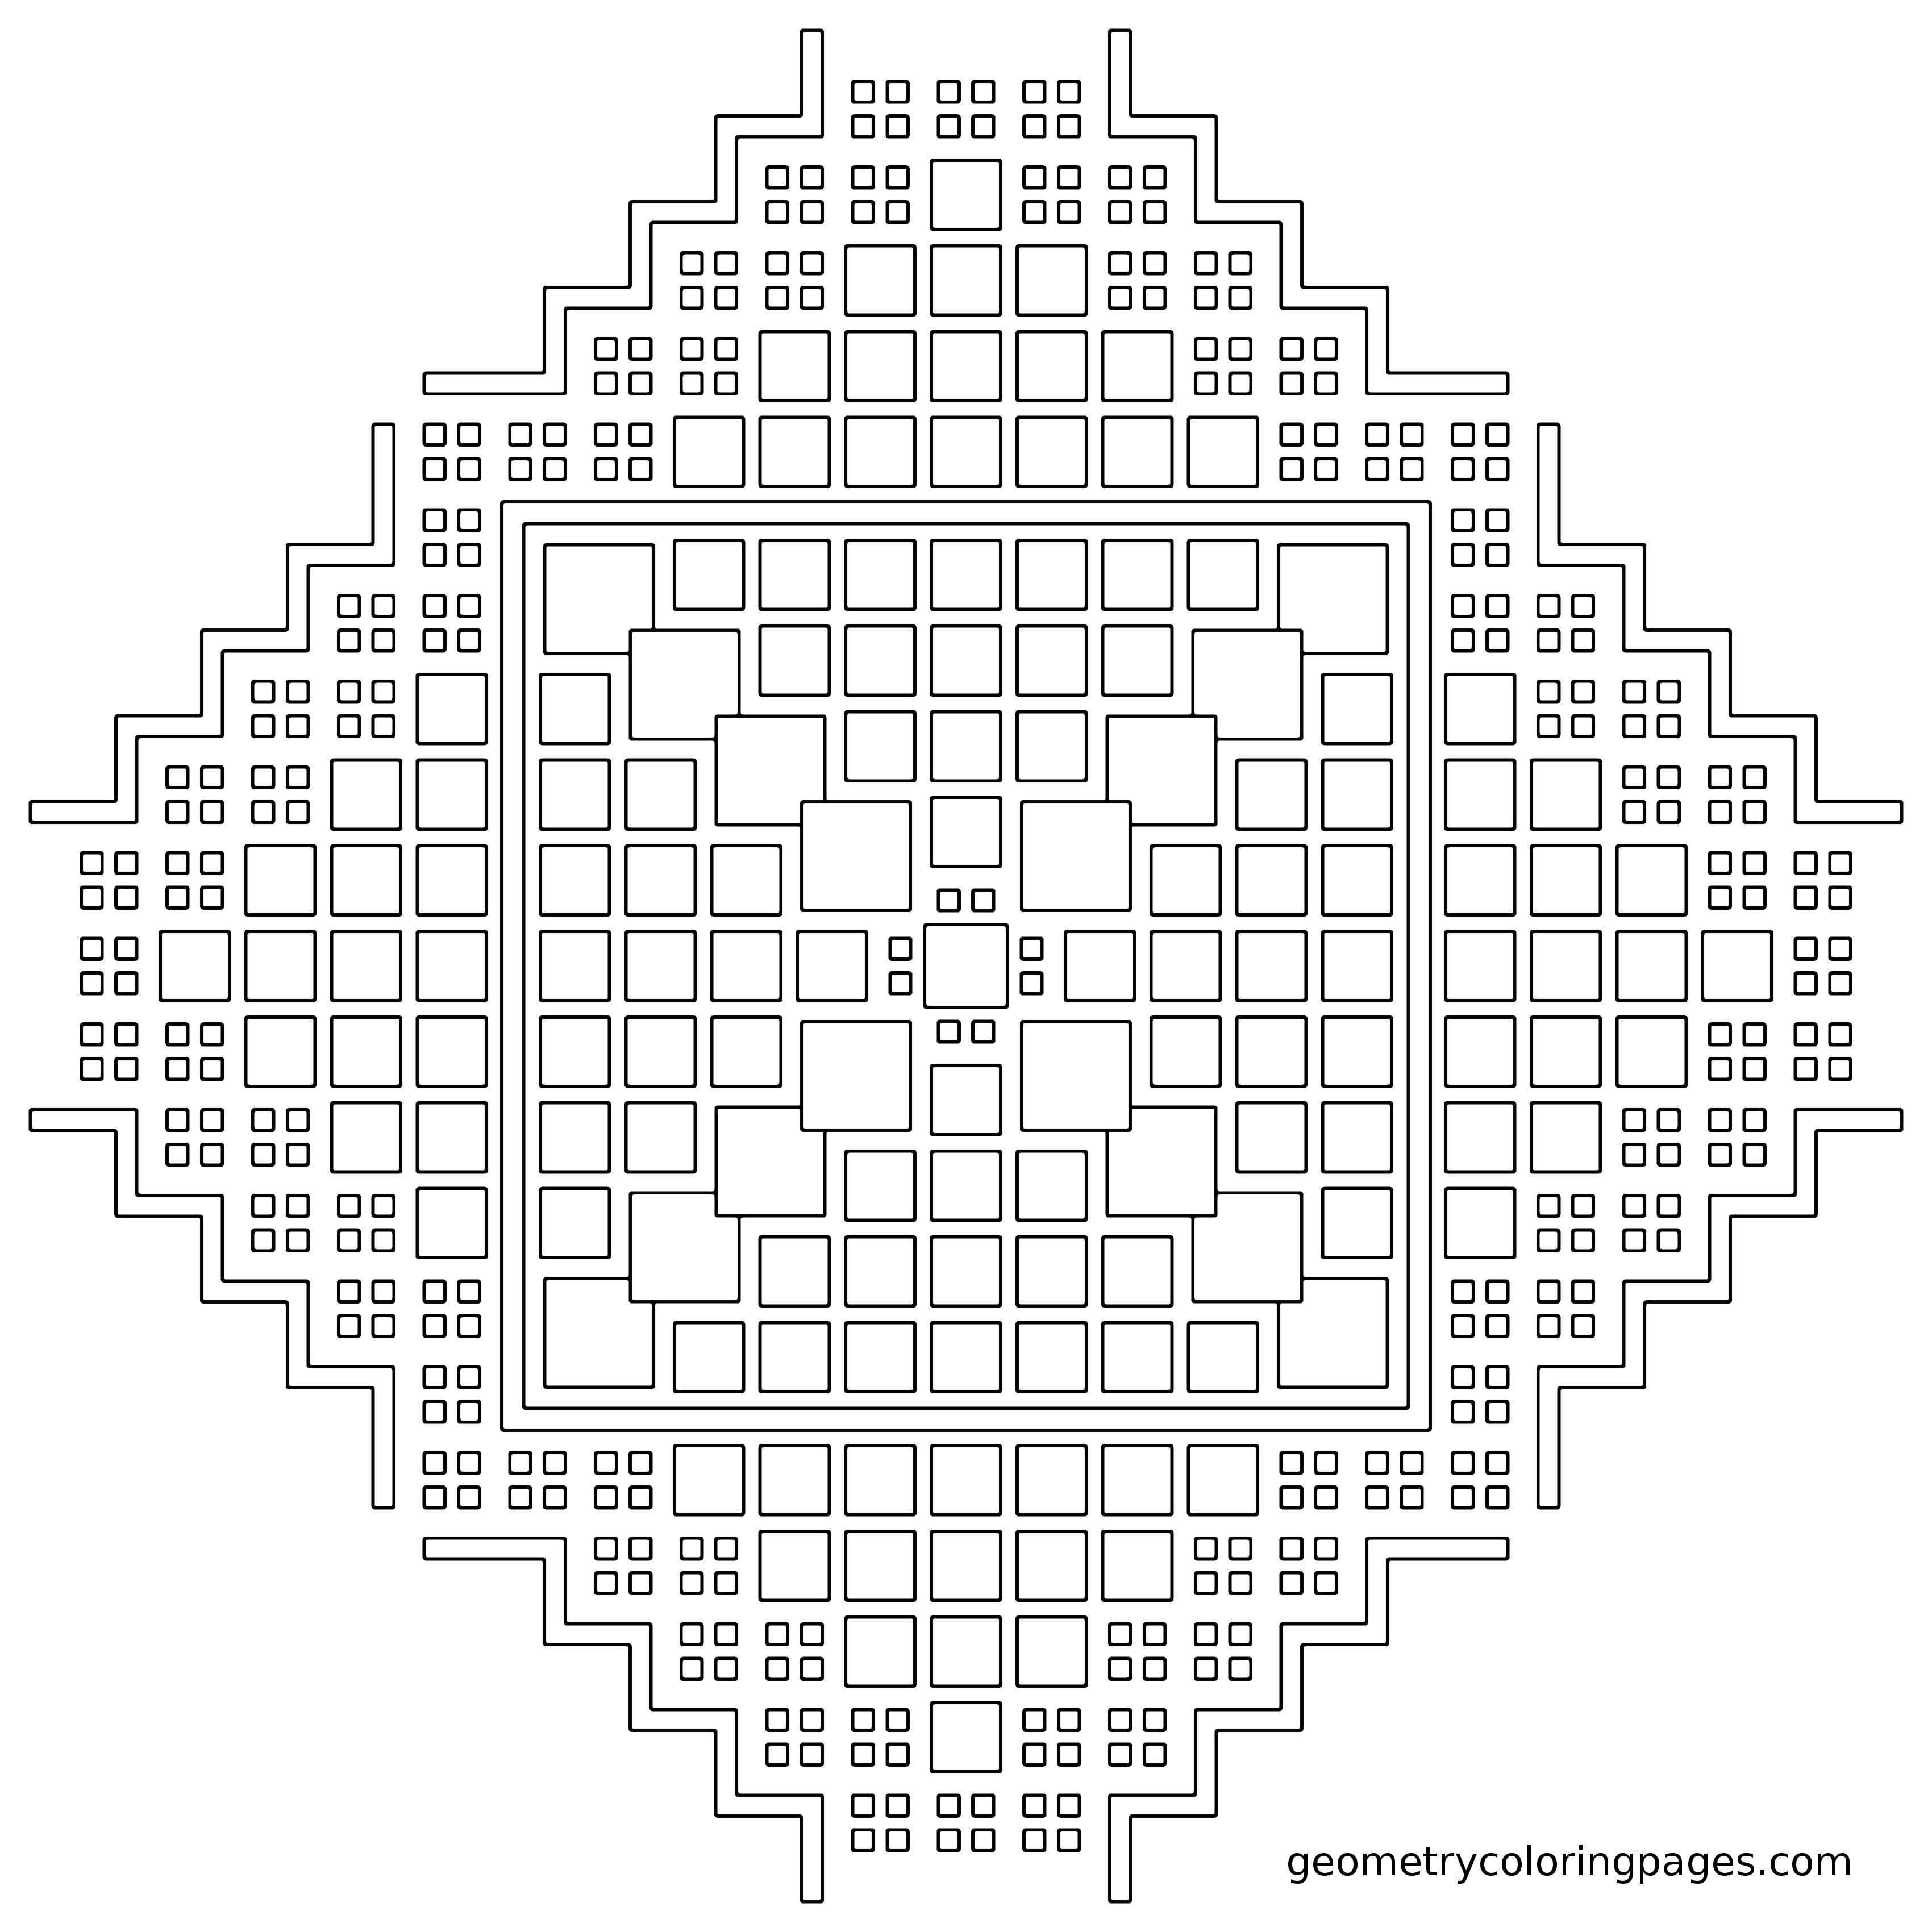 Geometry Coloring Page, Tile Fractal from geometrycoloringpages.com ...